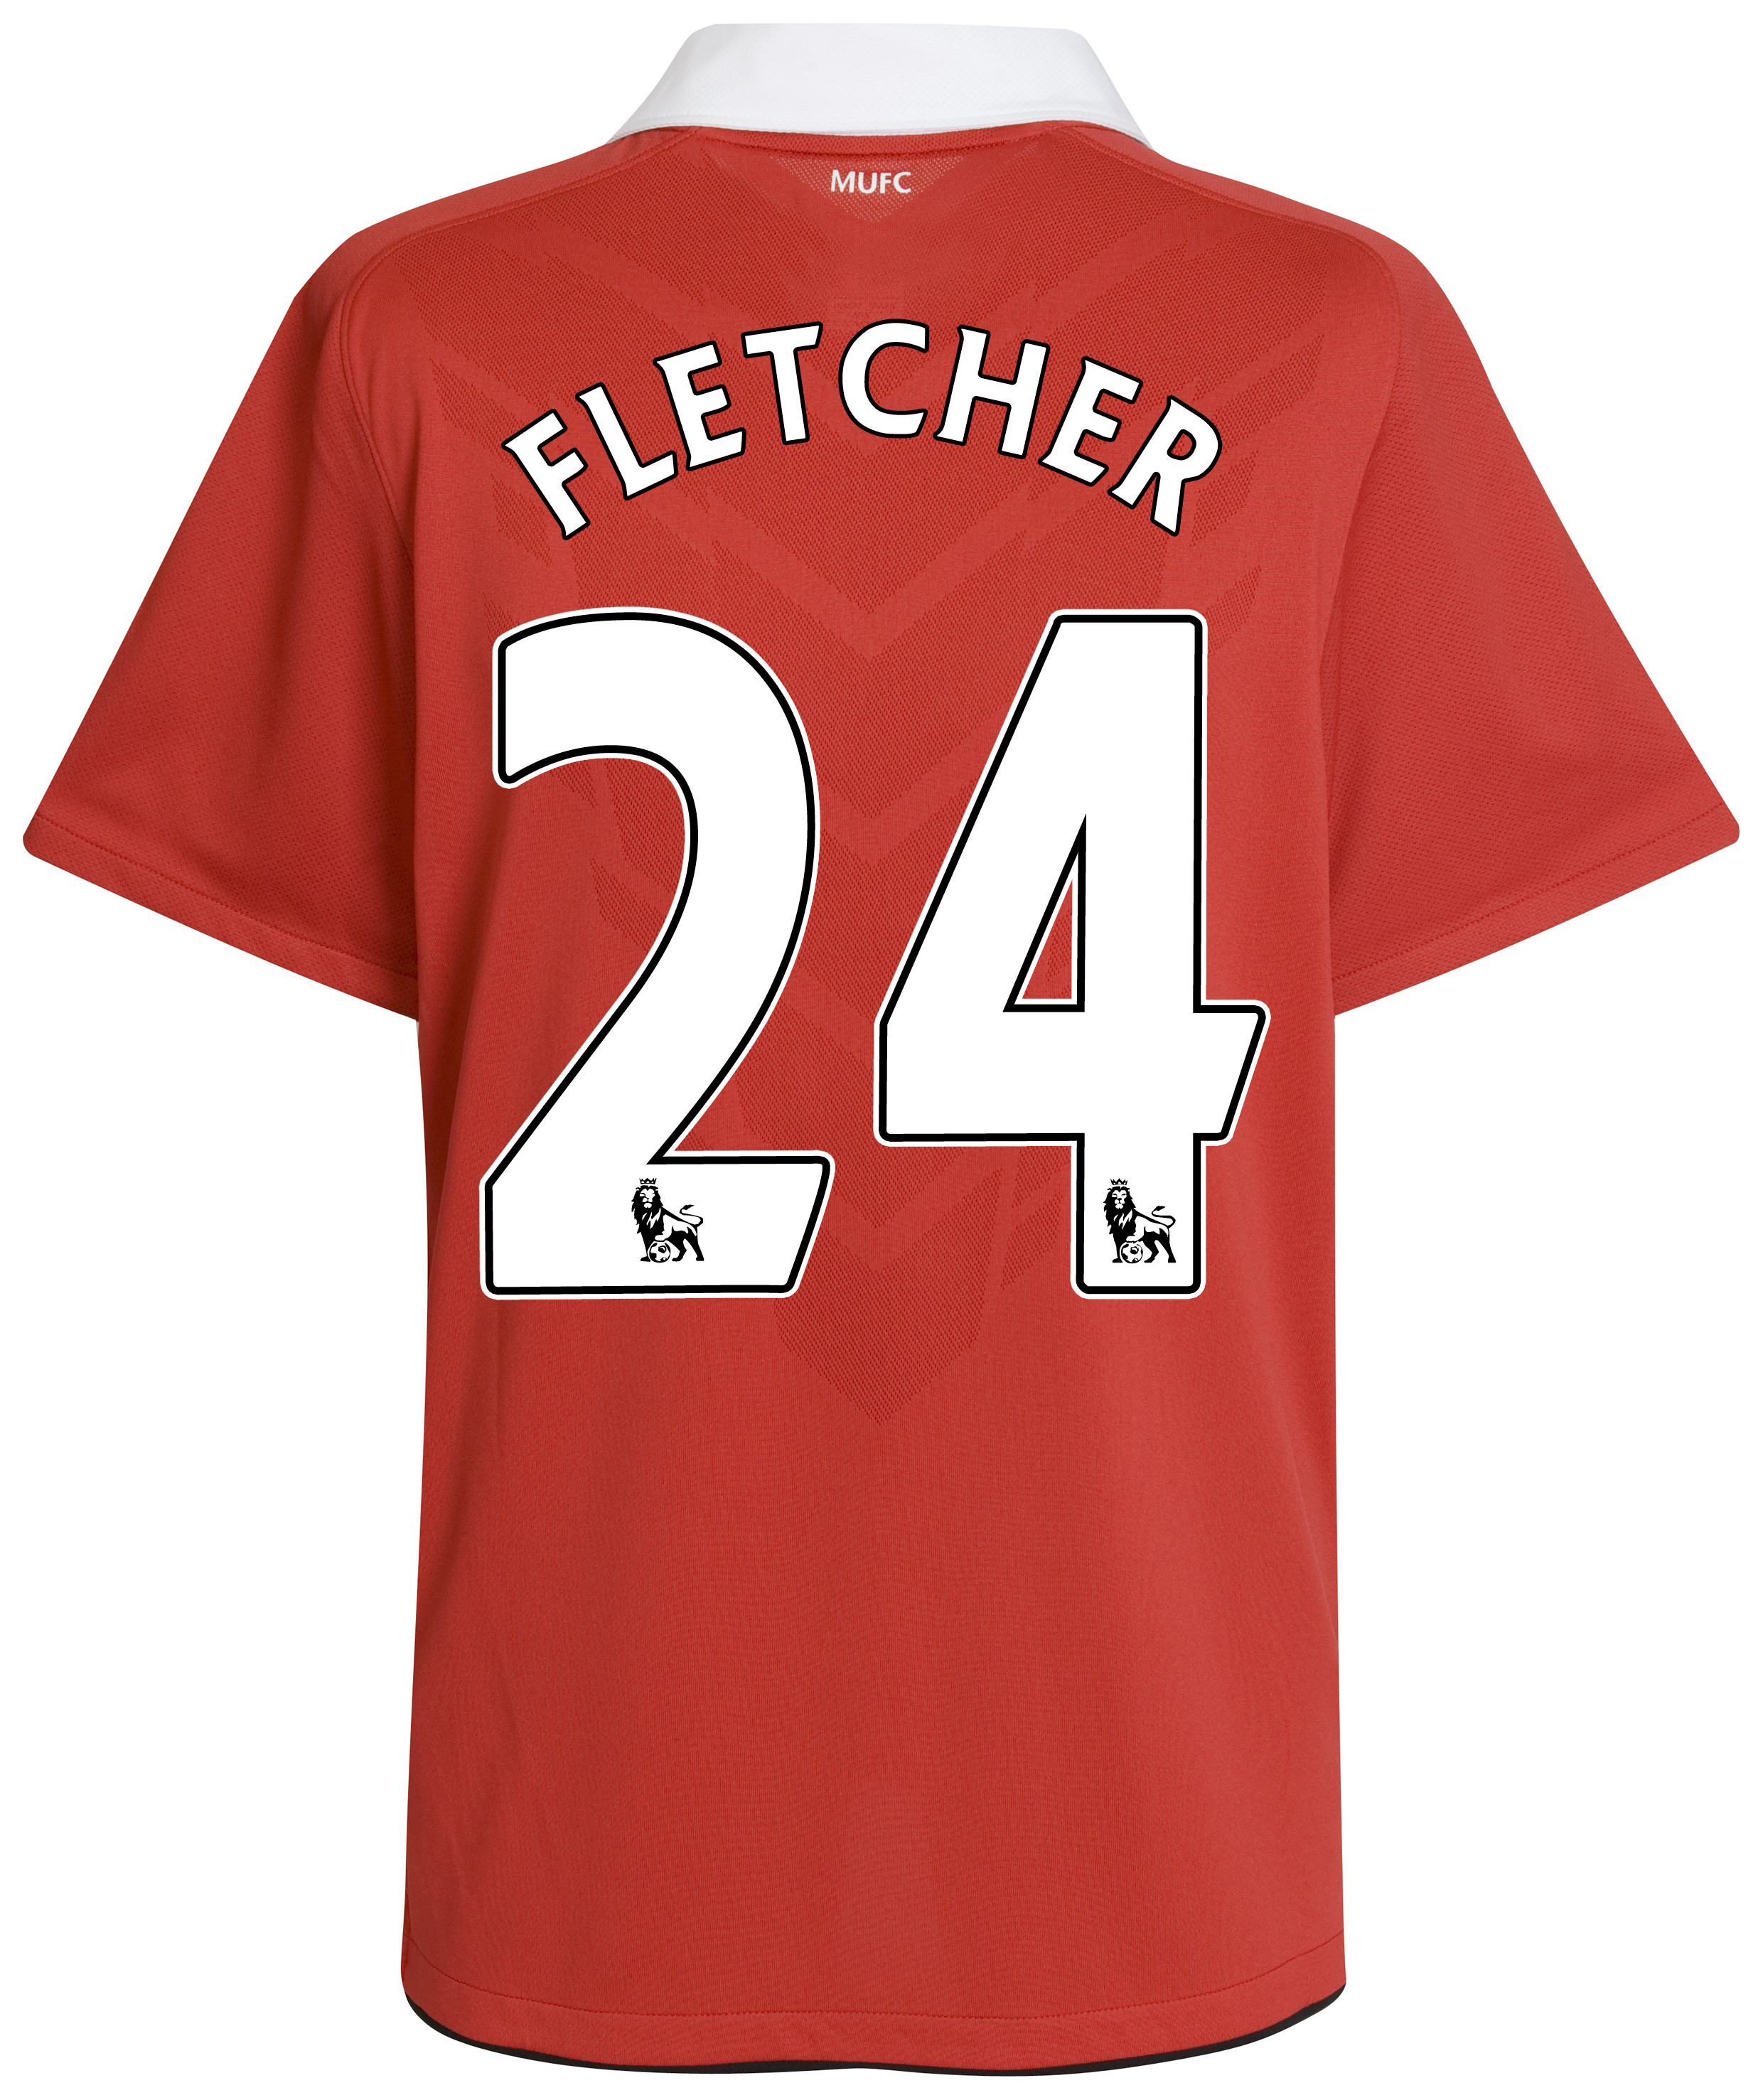 Manchester United Home Shirt 2010/11 with Fletcher 24 printing